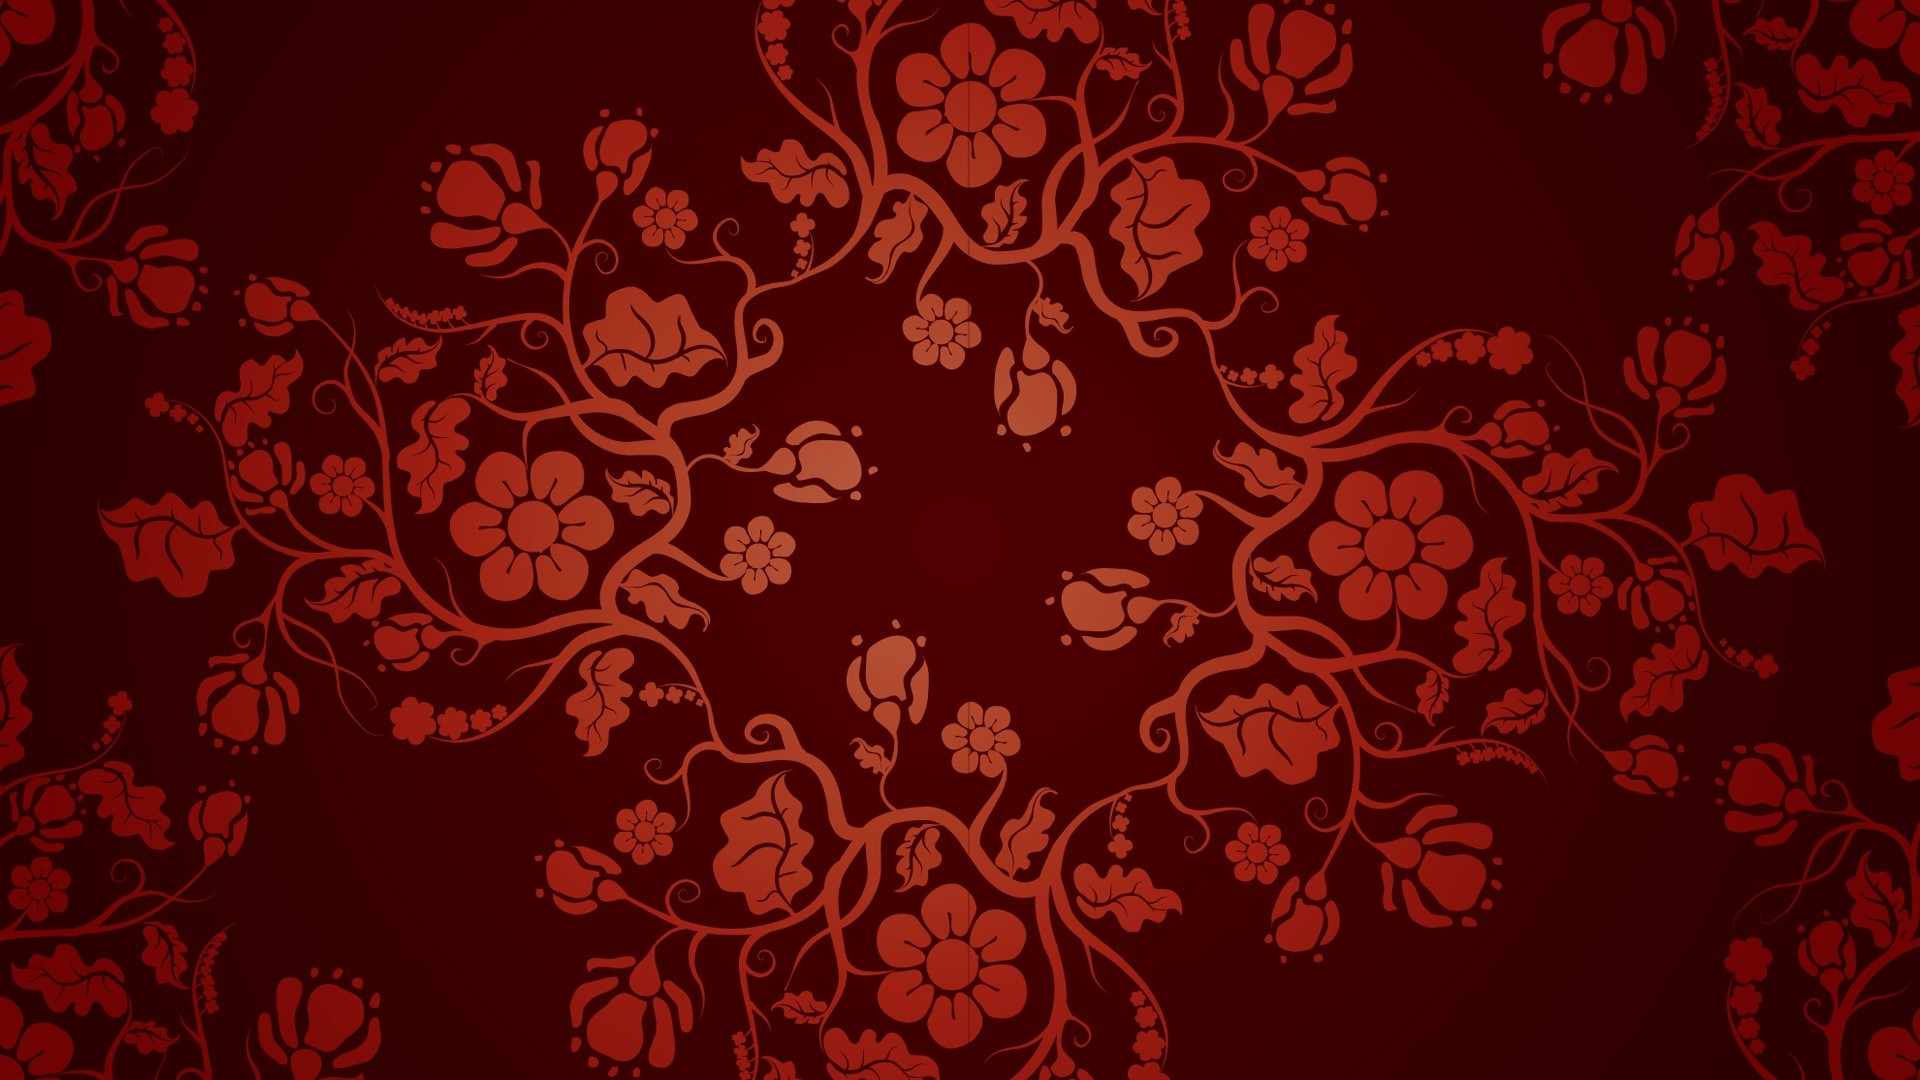 Fantasy Art Pattern Floral Red Wallpapers Hd Desktop And Mobile Backgrounds